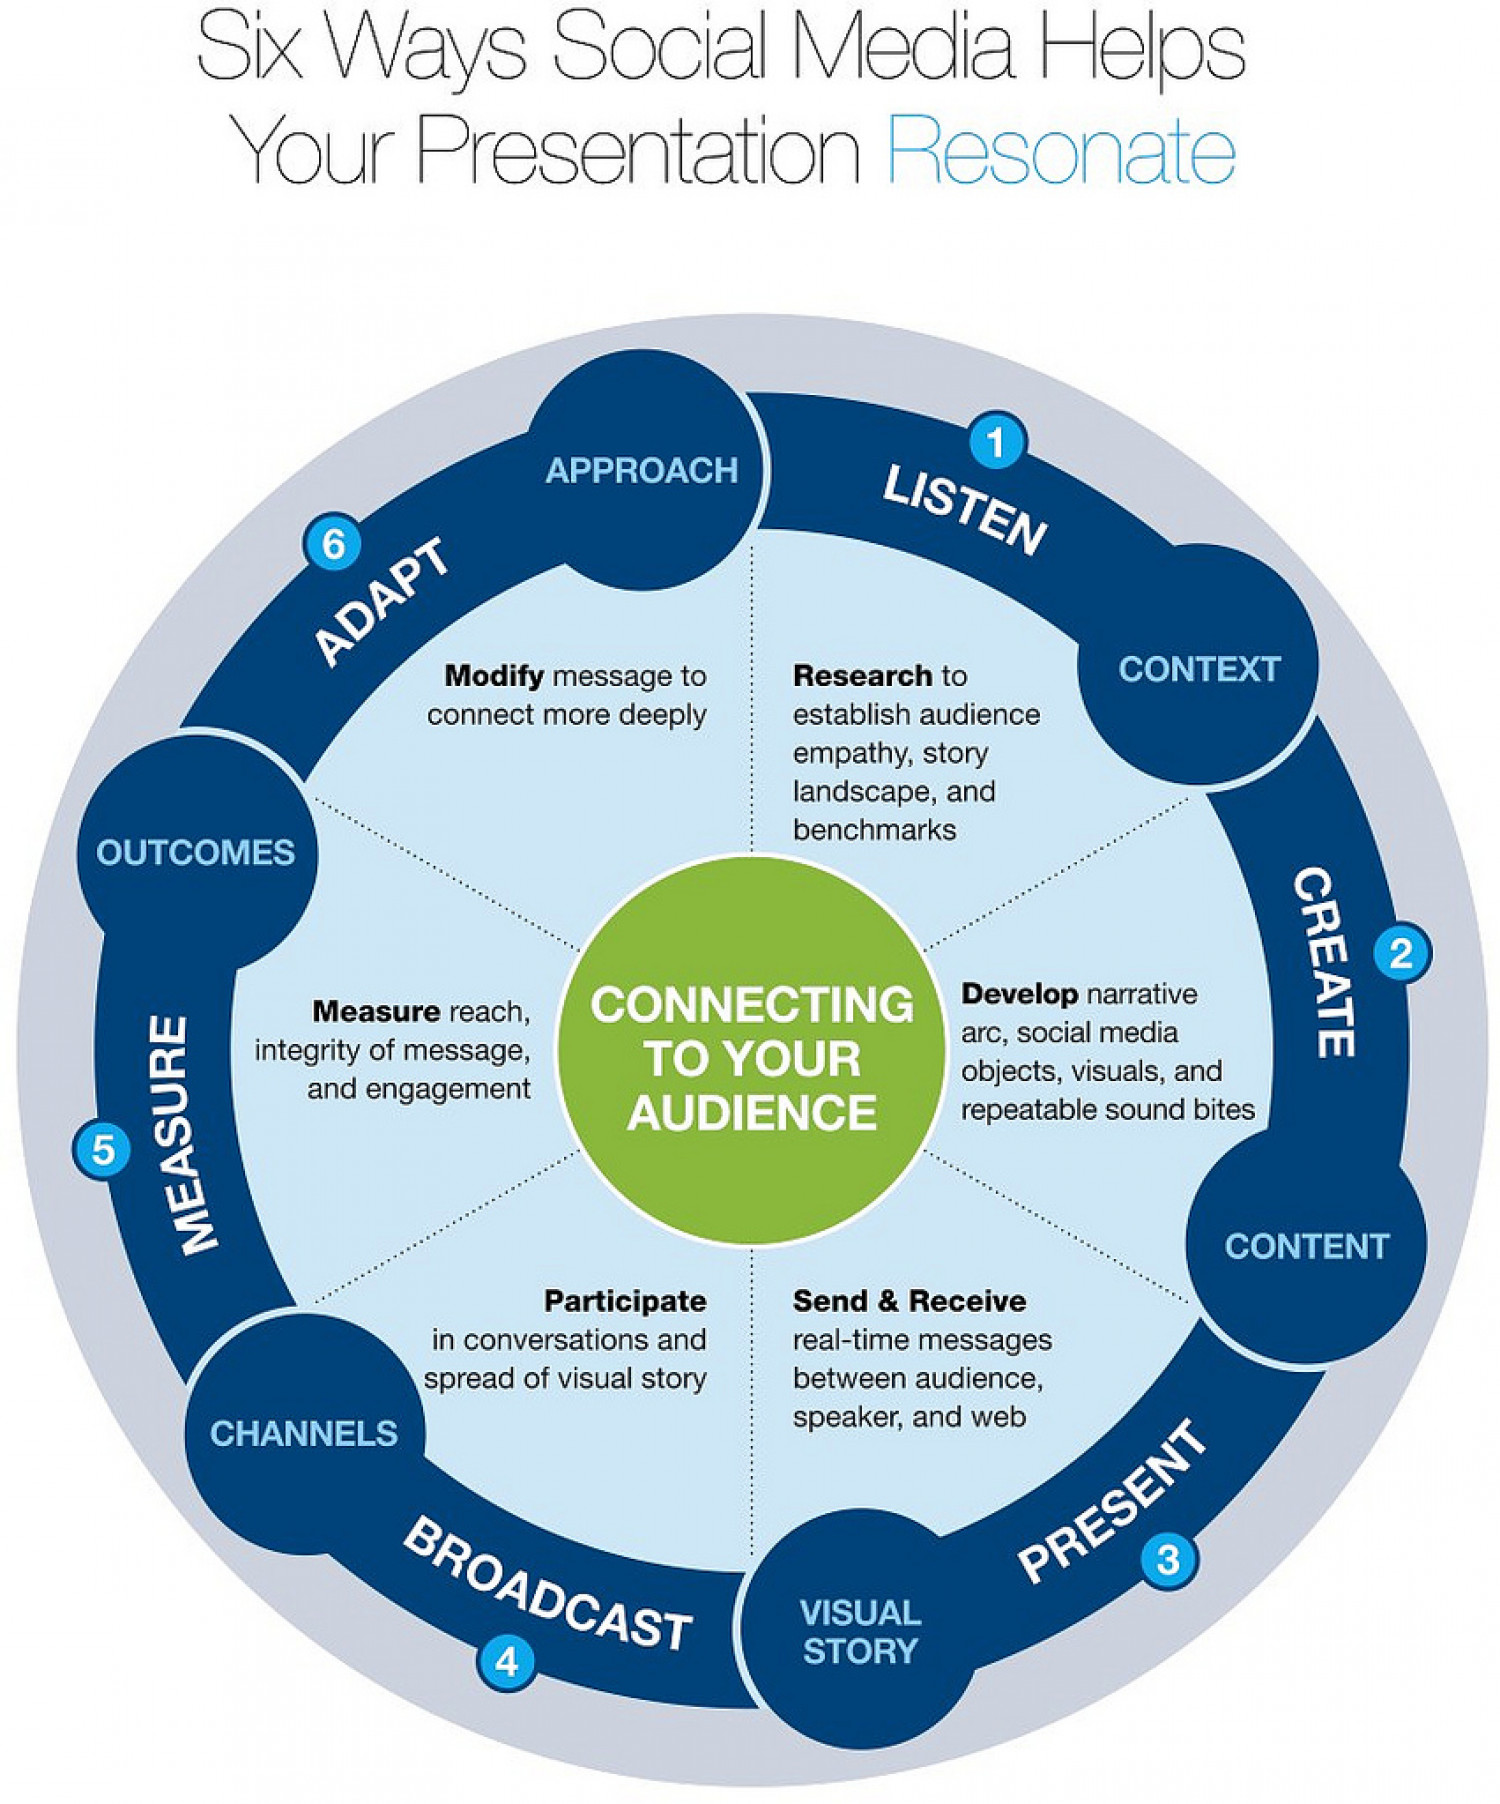 6 Ways Social Media Helps Your Presentation Resonate Infographic